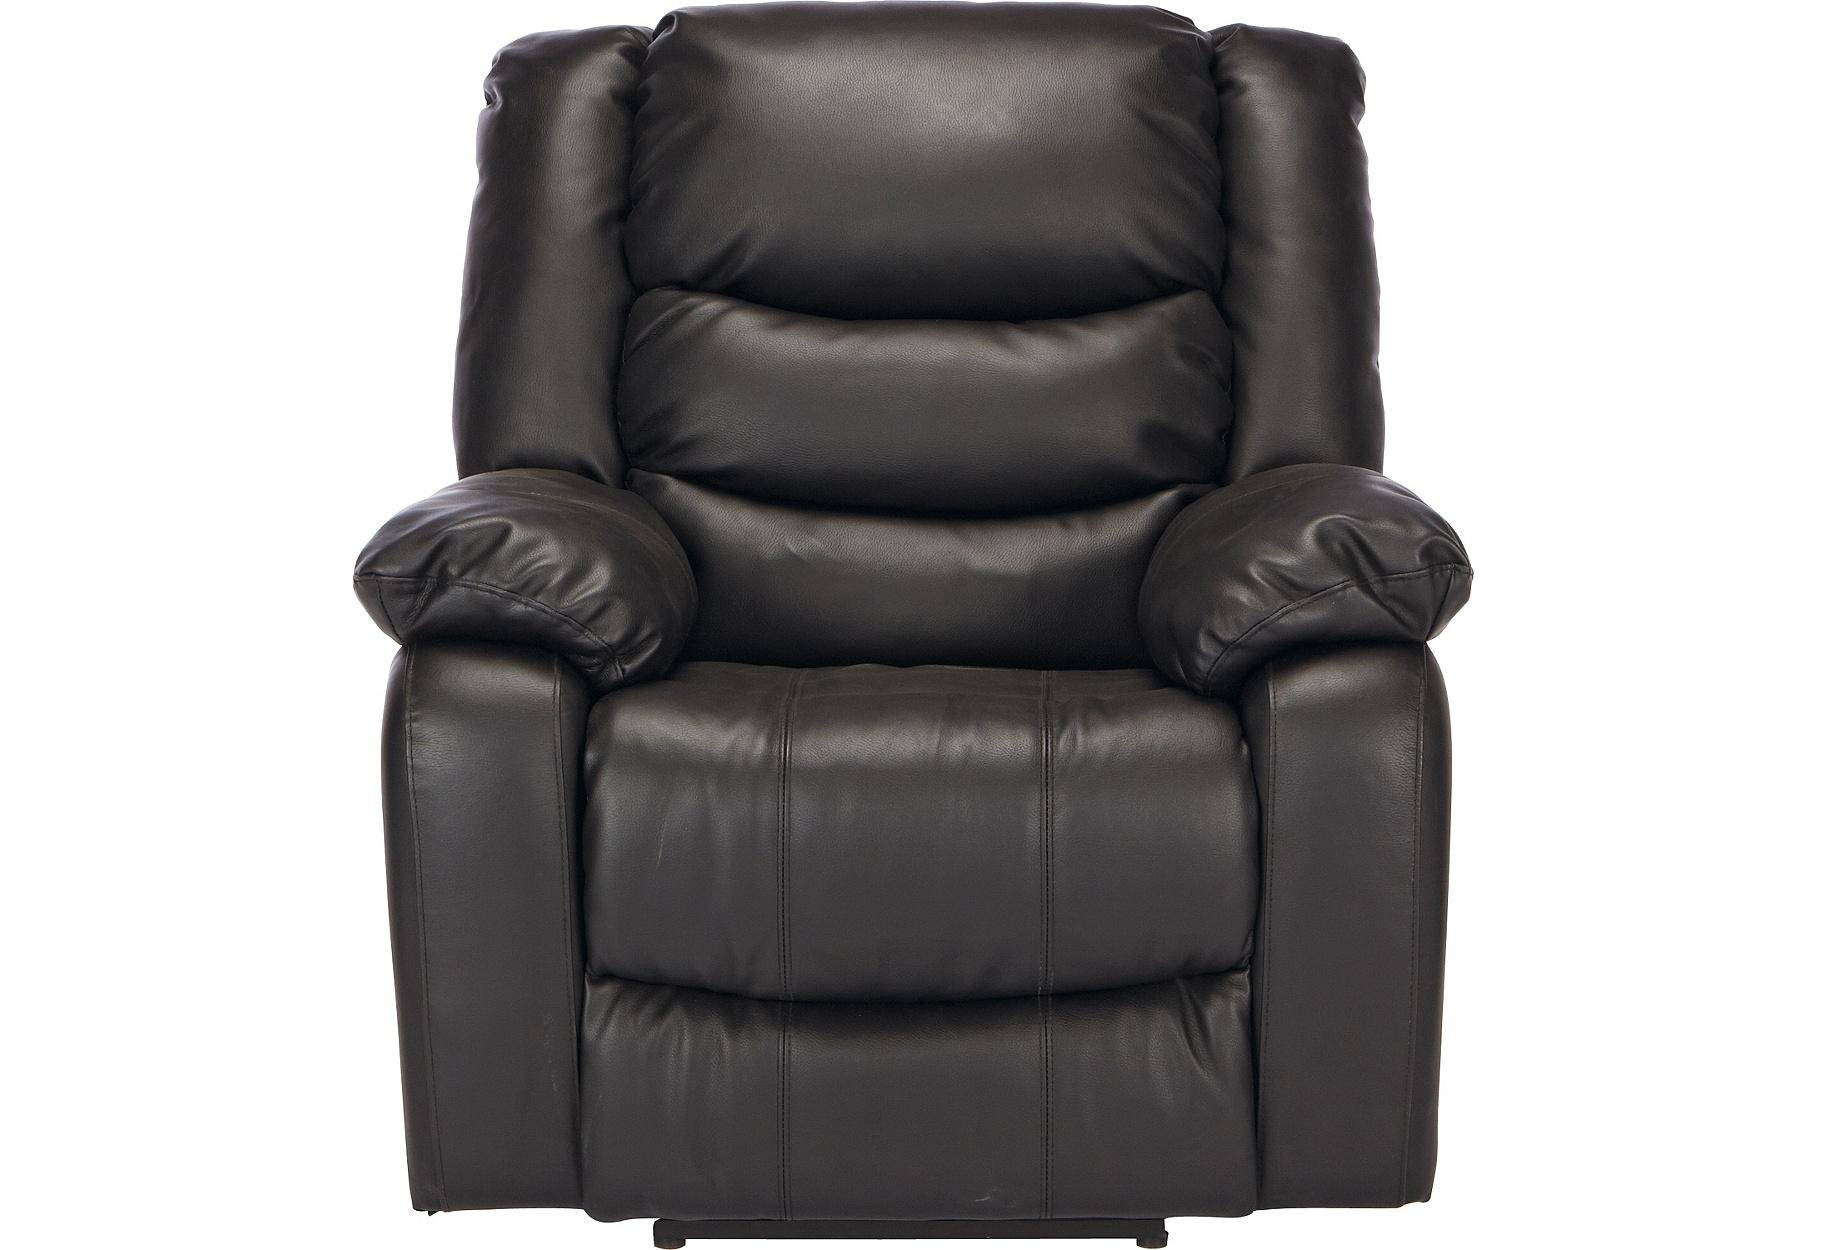 Argos Home Leather Massage Power Recliner Chair - Black